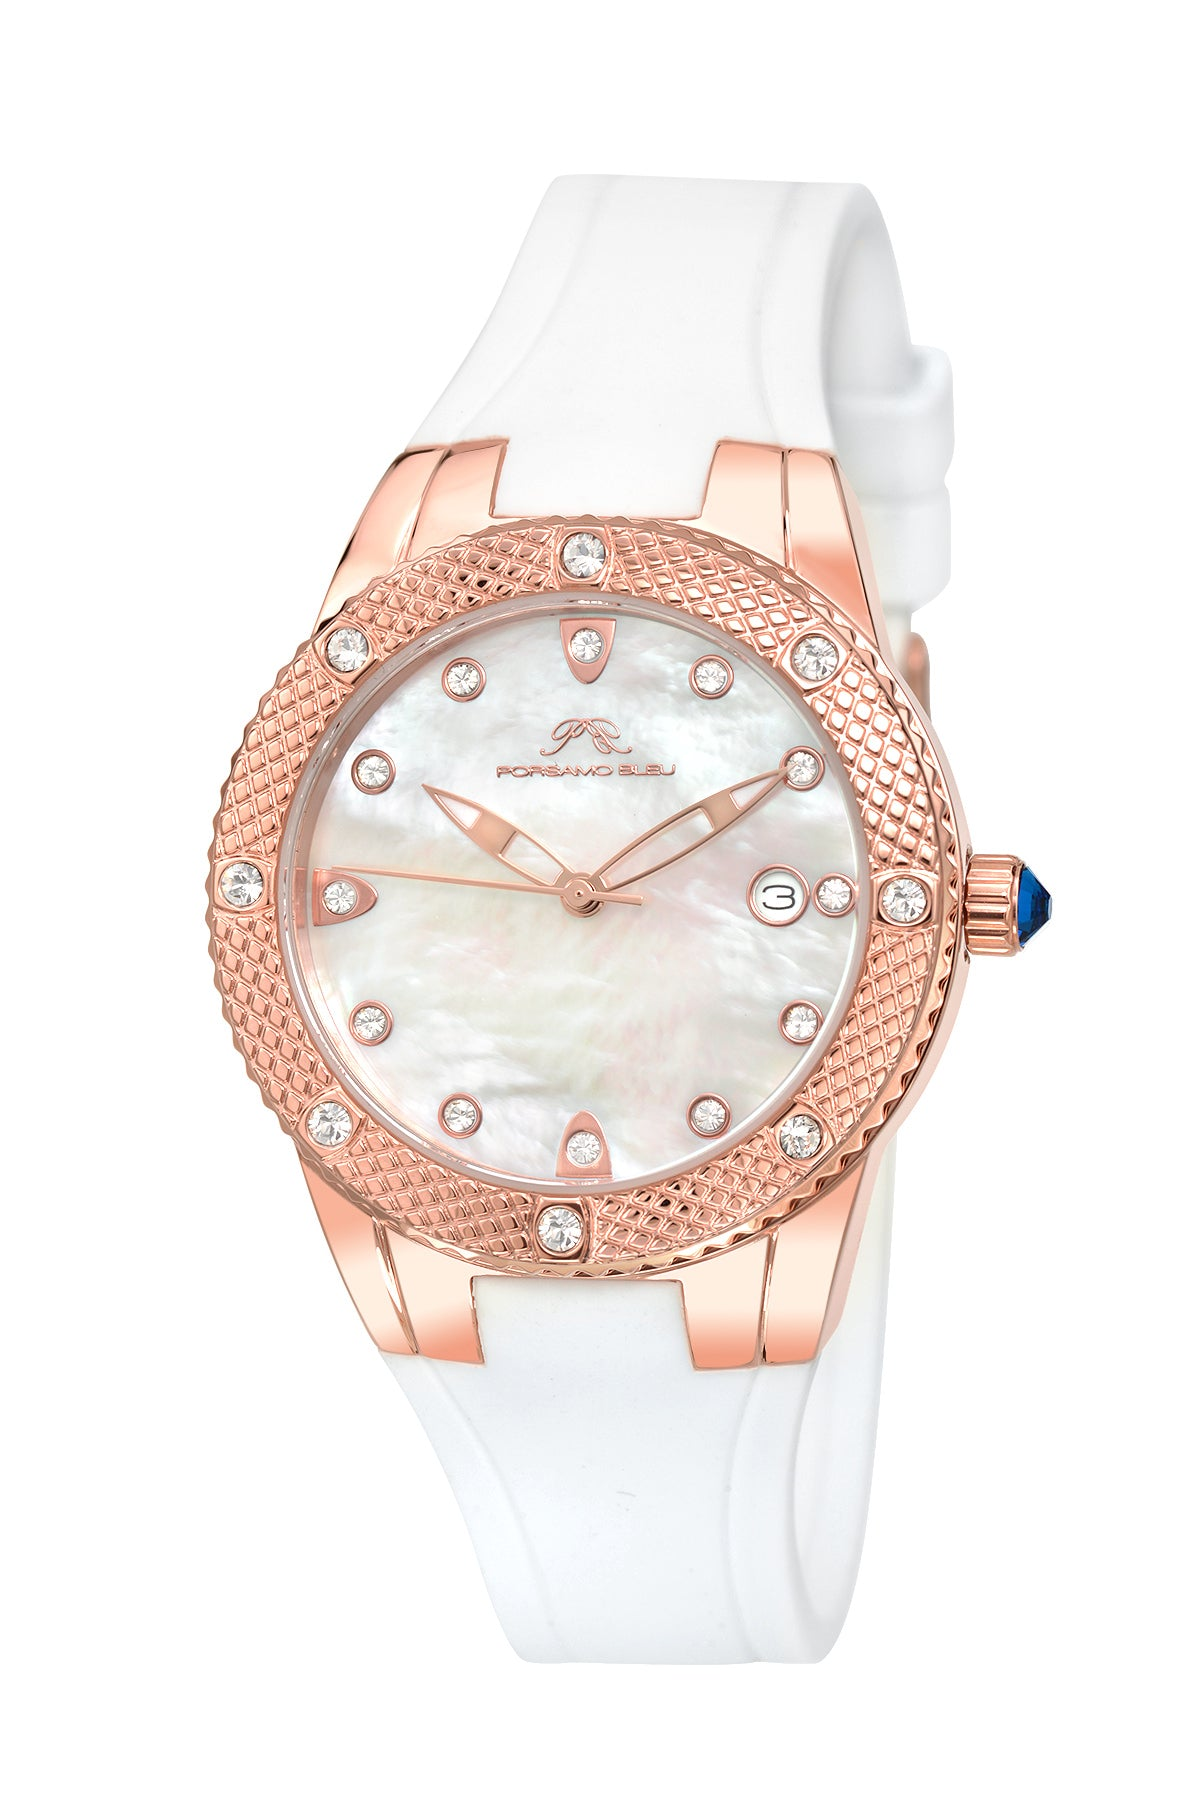 Porsamo Bleu Linda luxury women's watch, silicone strap, rose, white 491CLIR